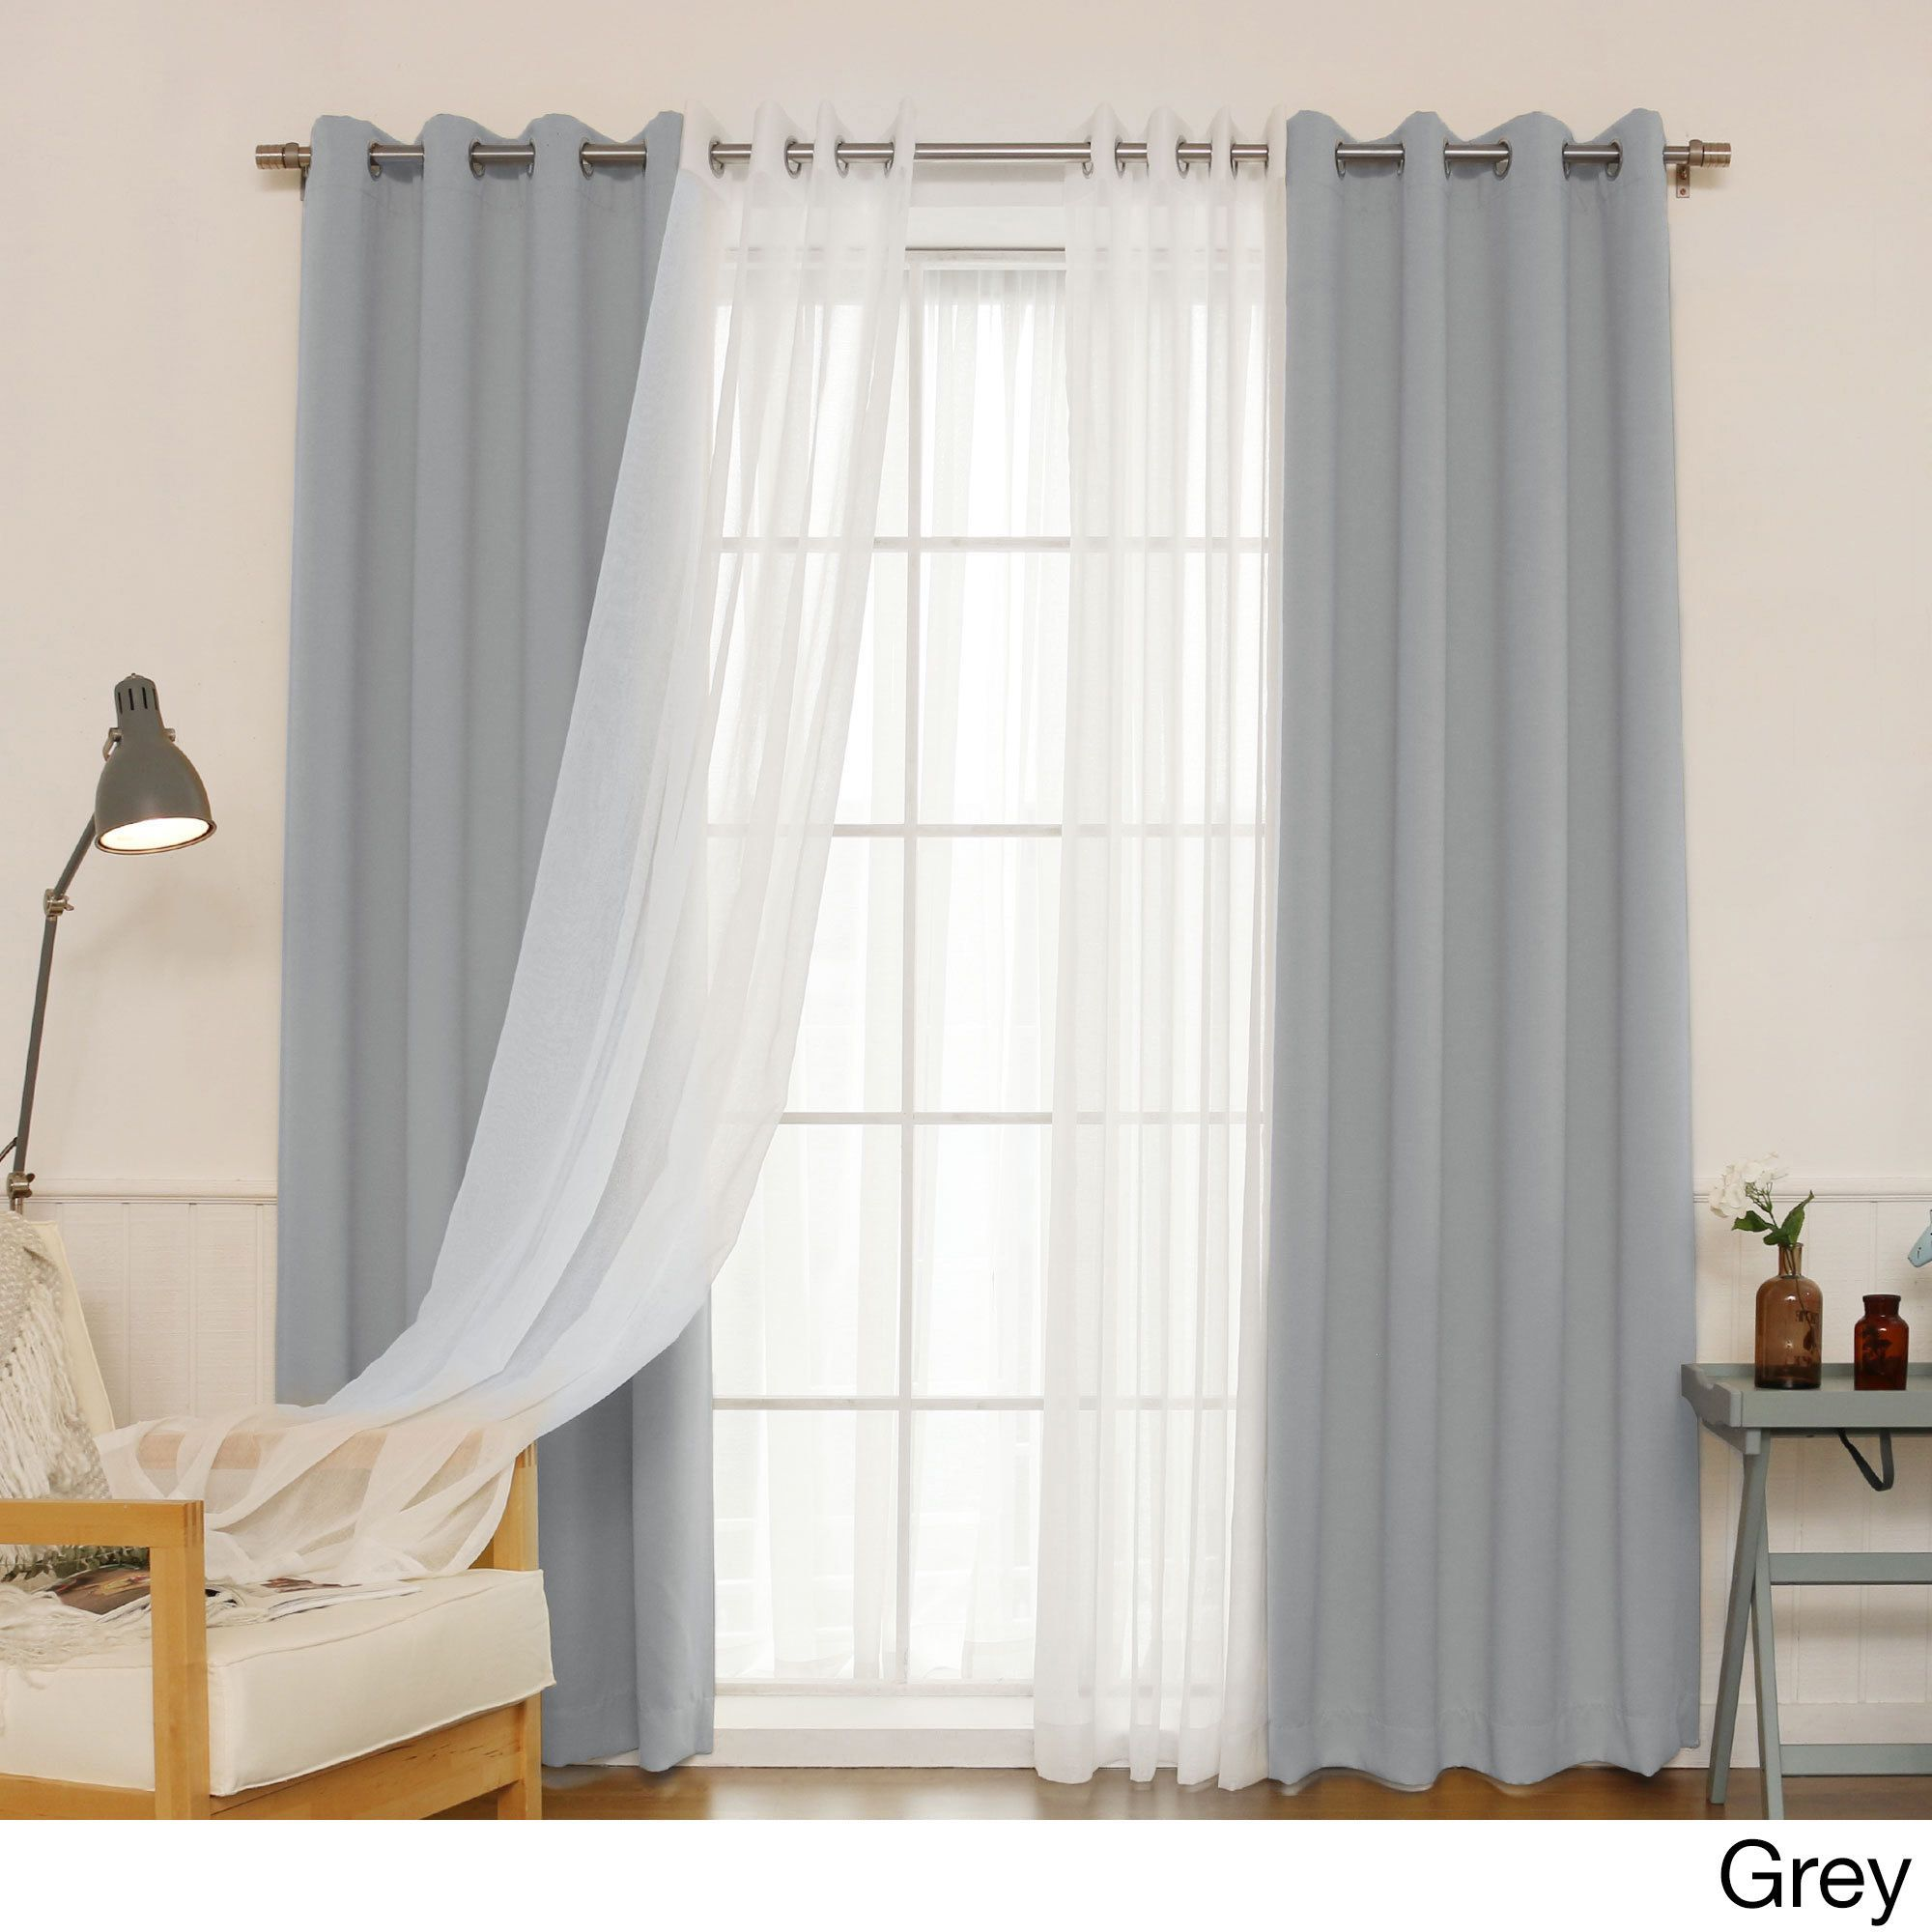 Inverted Pleat Drapes That Will Smarten Your Window Appearances